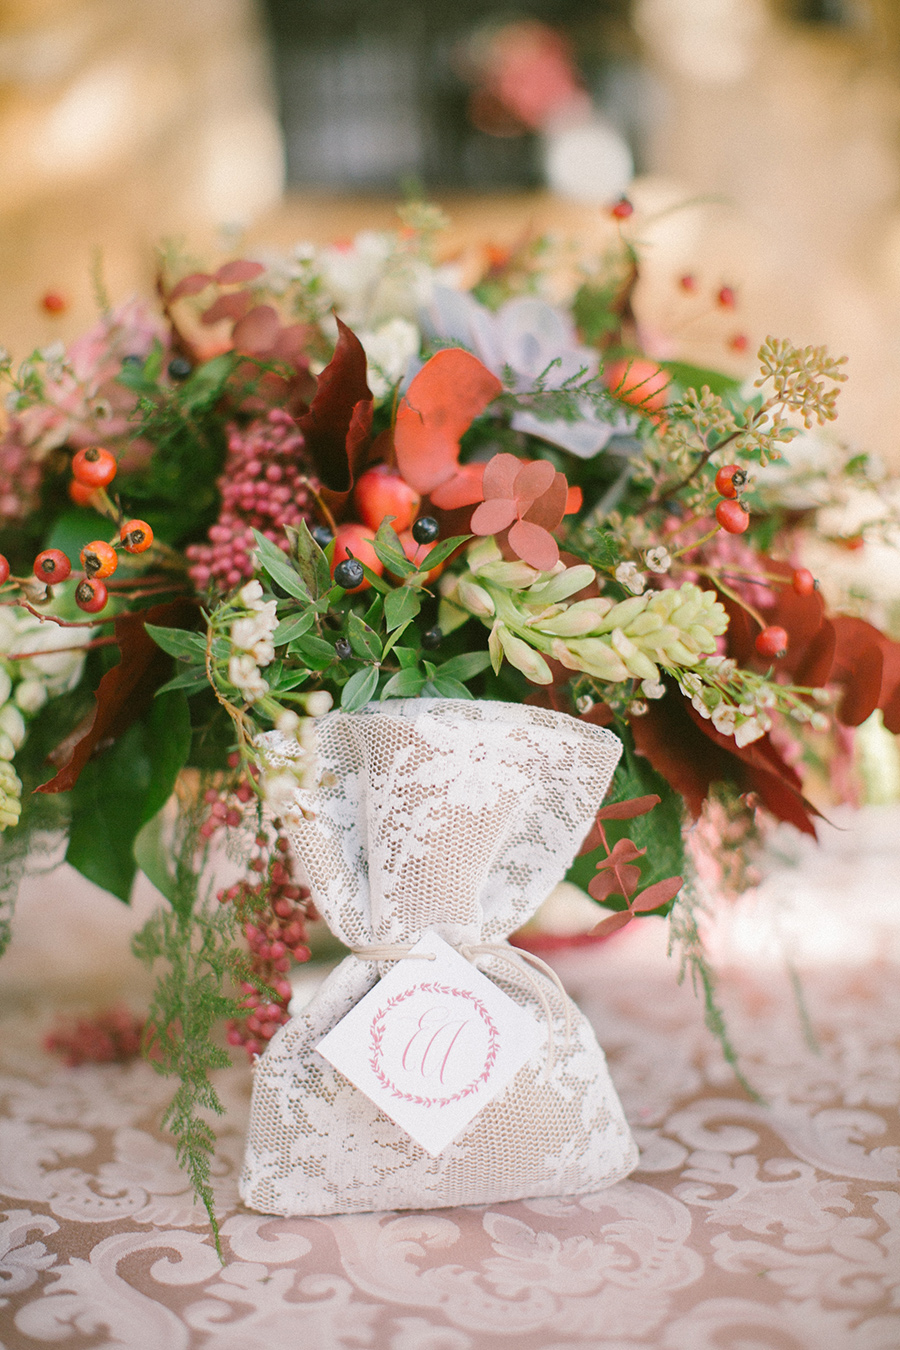 Boho Chic Inspired Wedding Floral Design with a Sachet Favor / styled shoot coordinated by Love 4 Wed / photo by Anna Roussos Photography